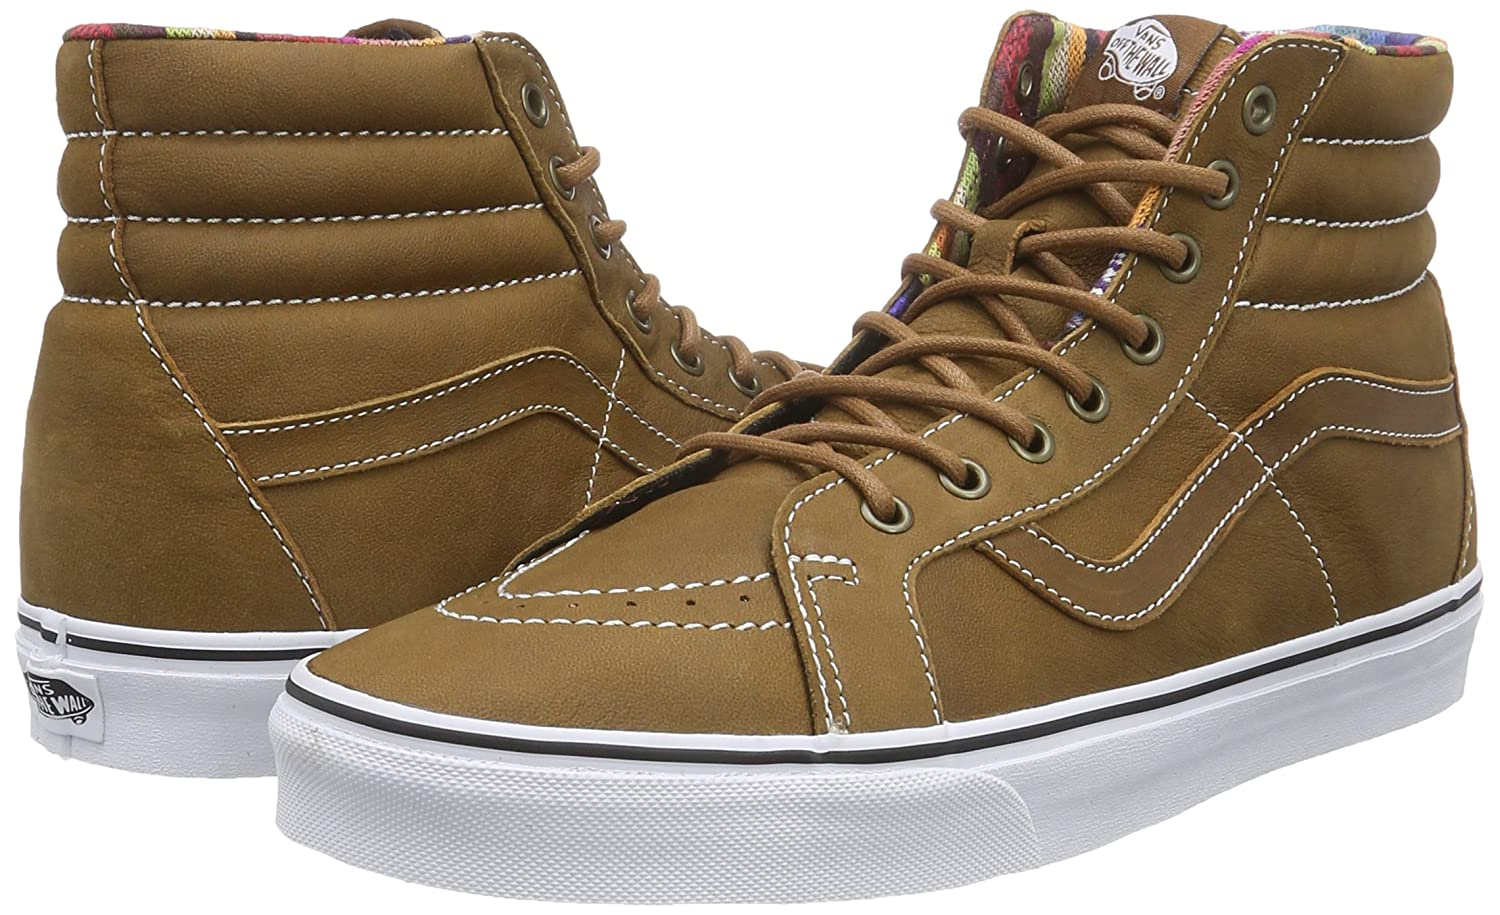 VANS MENS SK8 HI REISSUE LEATHER SHOES B00WVUCLLS 10 M US Women / 8.5 M US Men|Brown/Guate